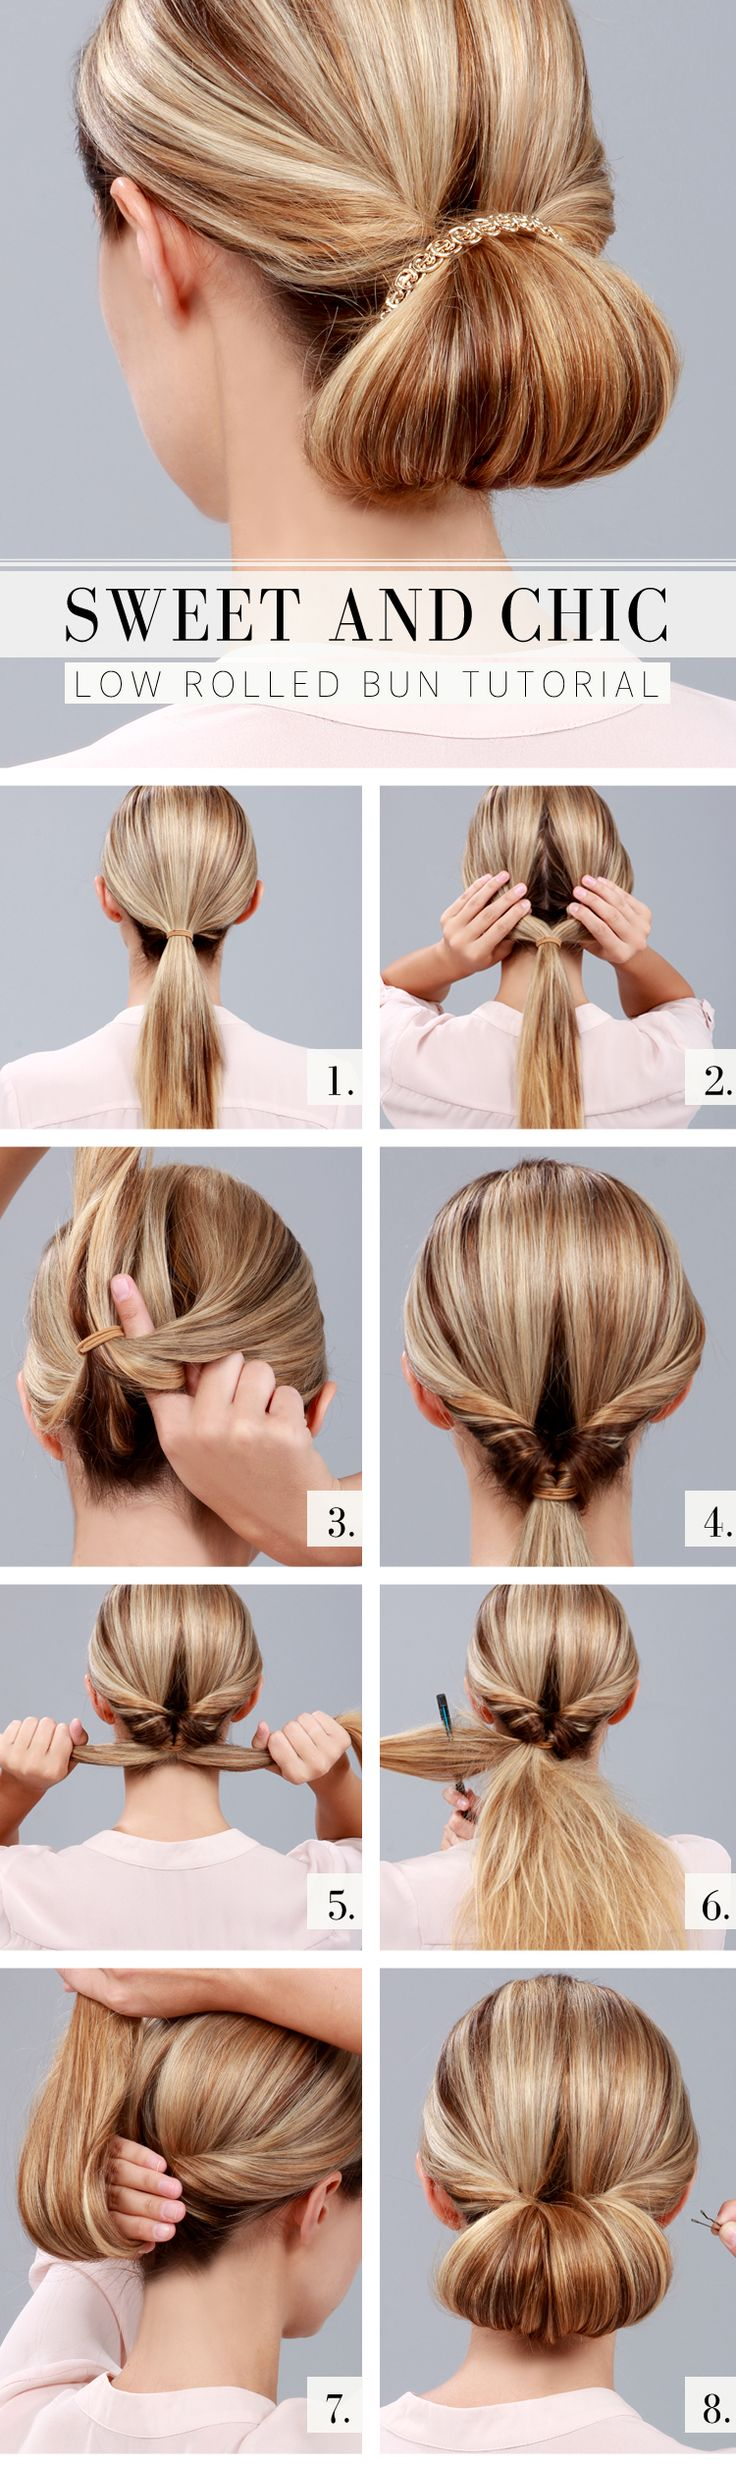 Chic Low Rolled Bun Tutorial via LuLus.com!